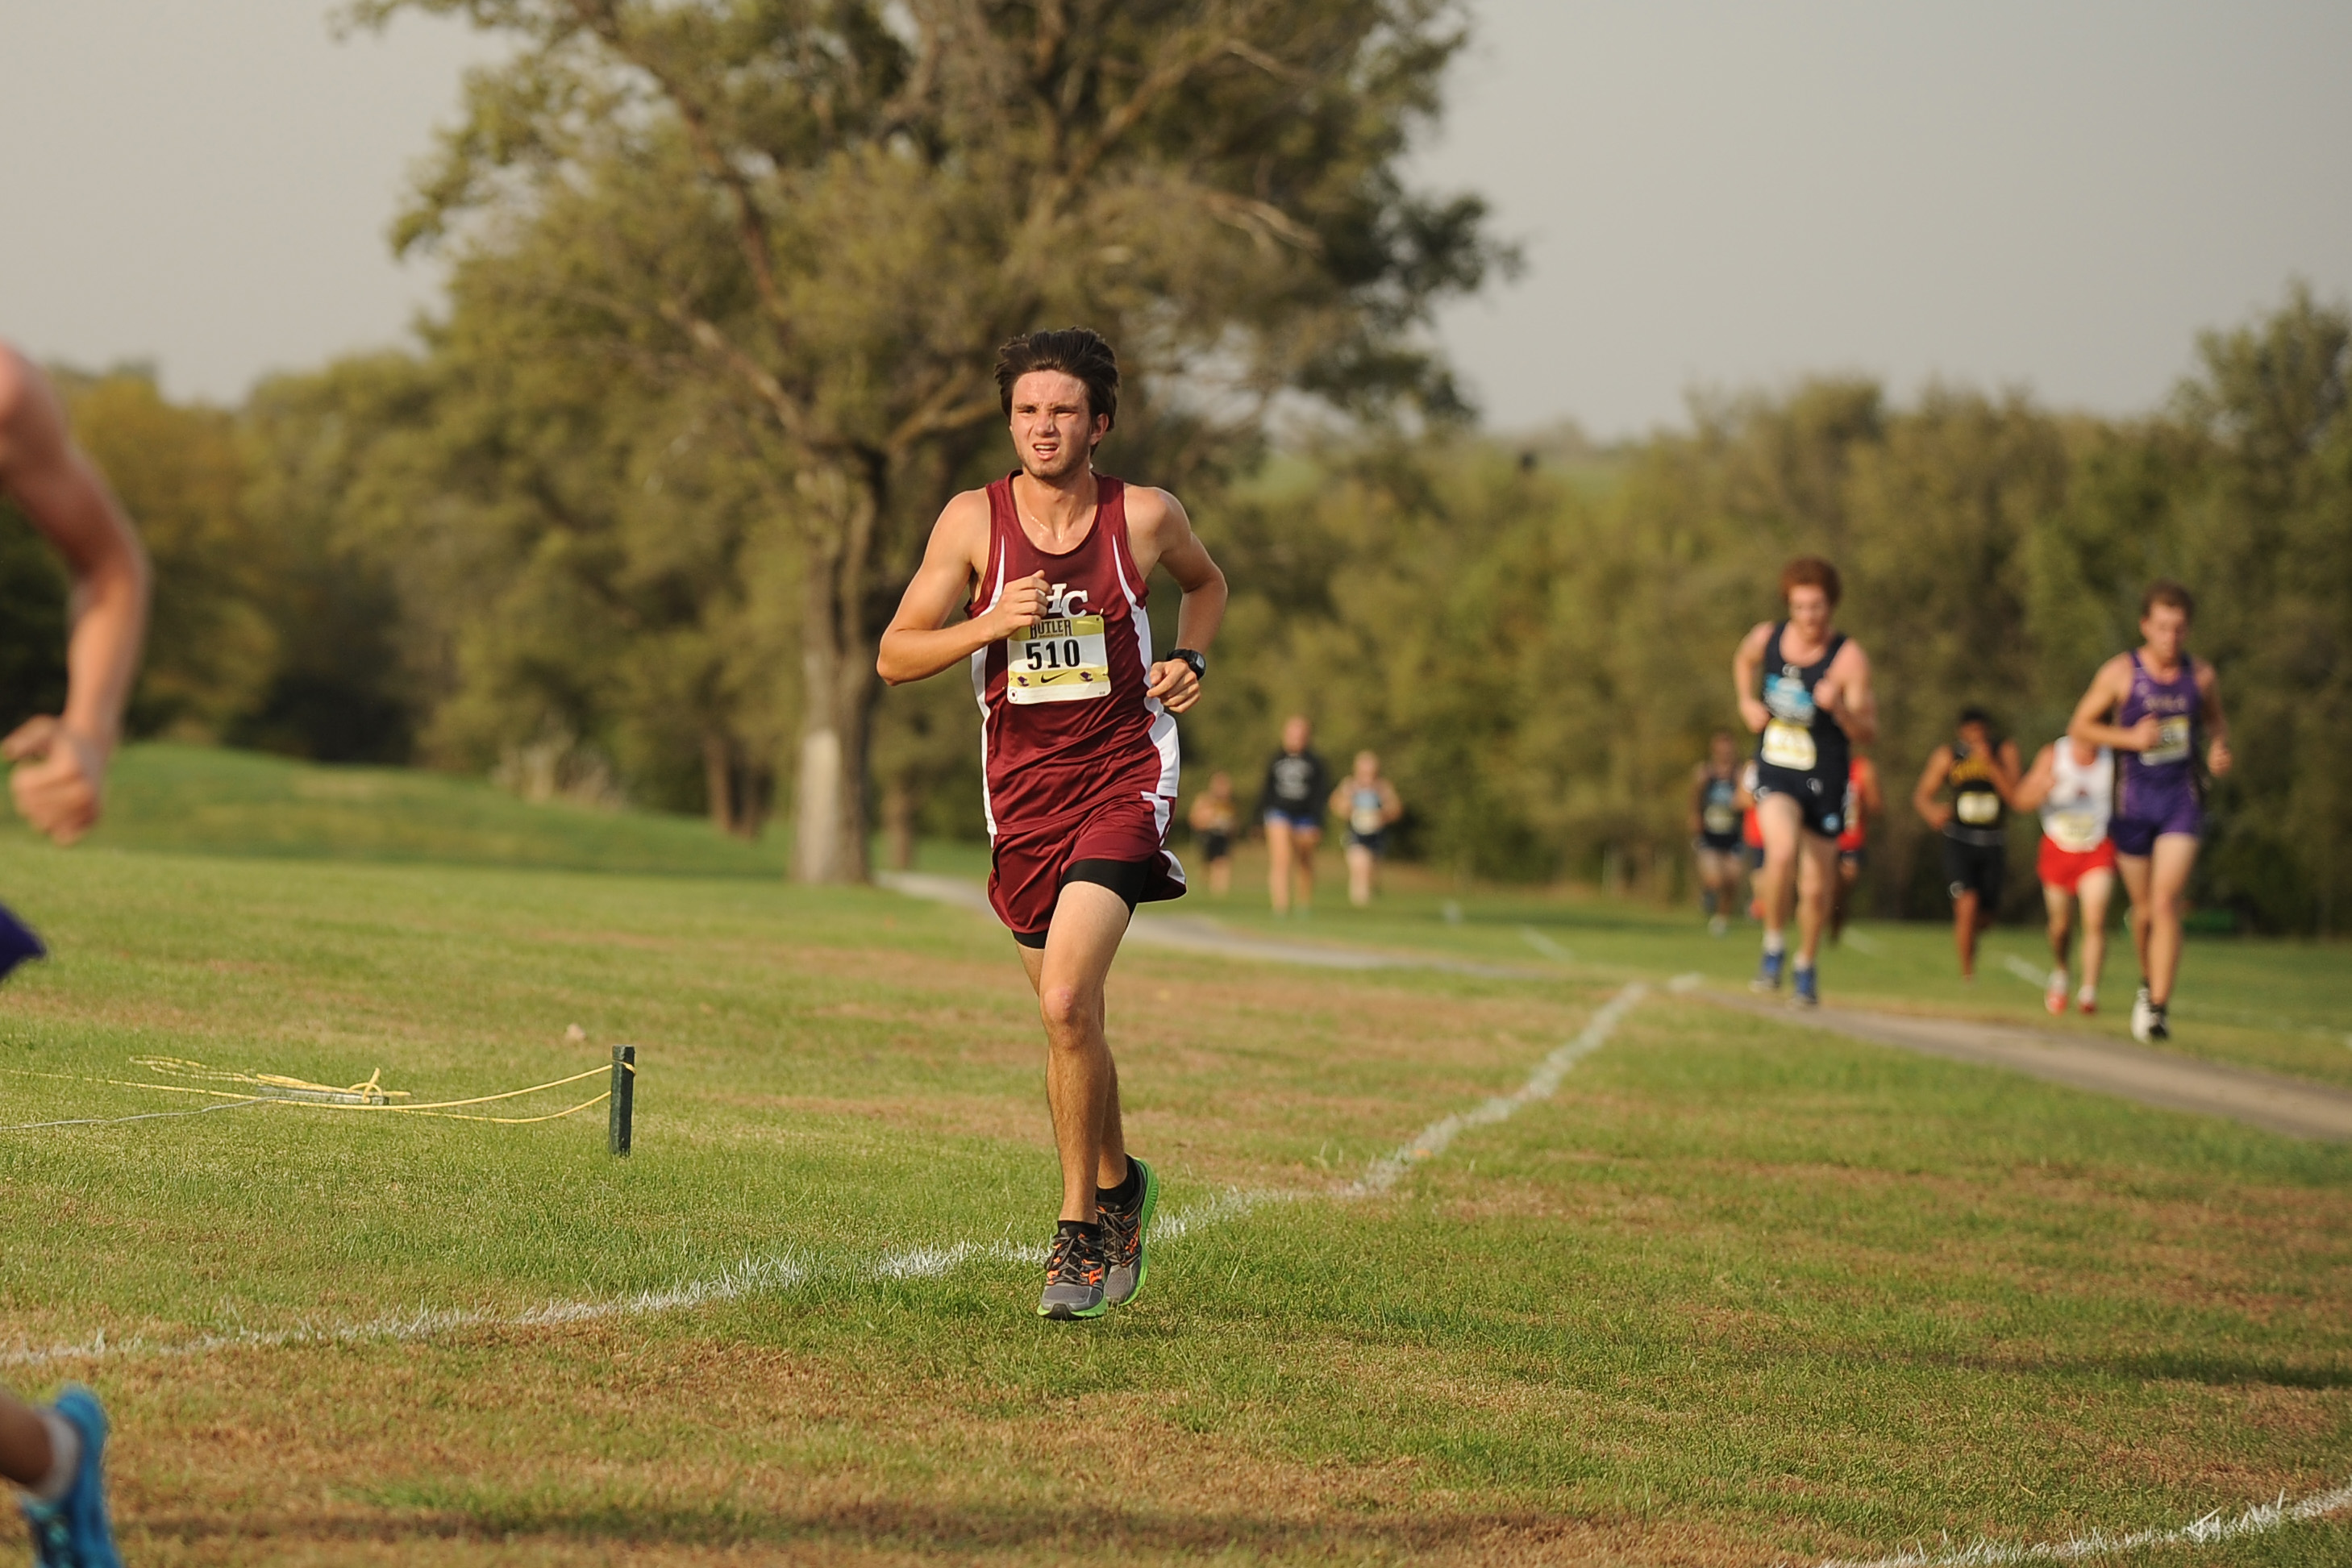 Kyle Good competes in the Butler Invitational at El Dorado. Photo by Larry Bartel